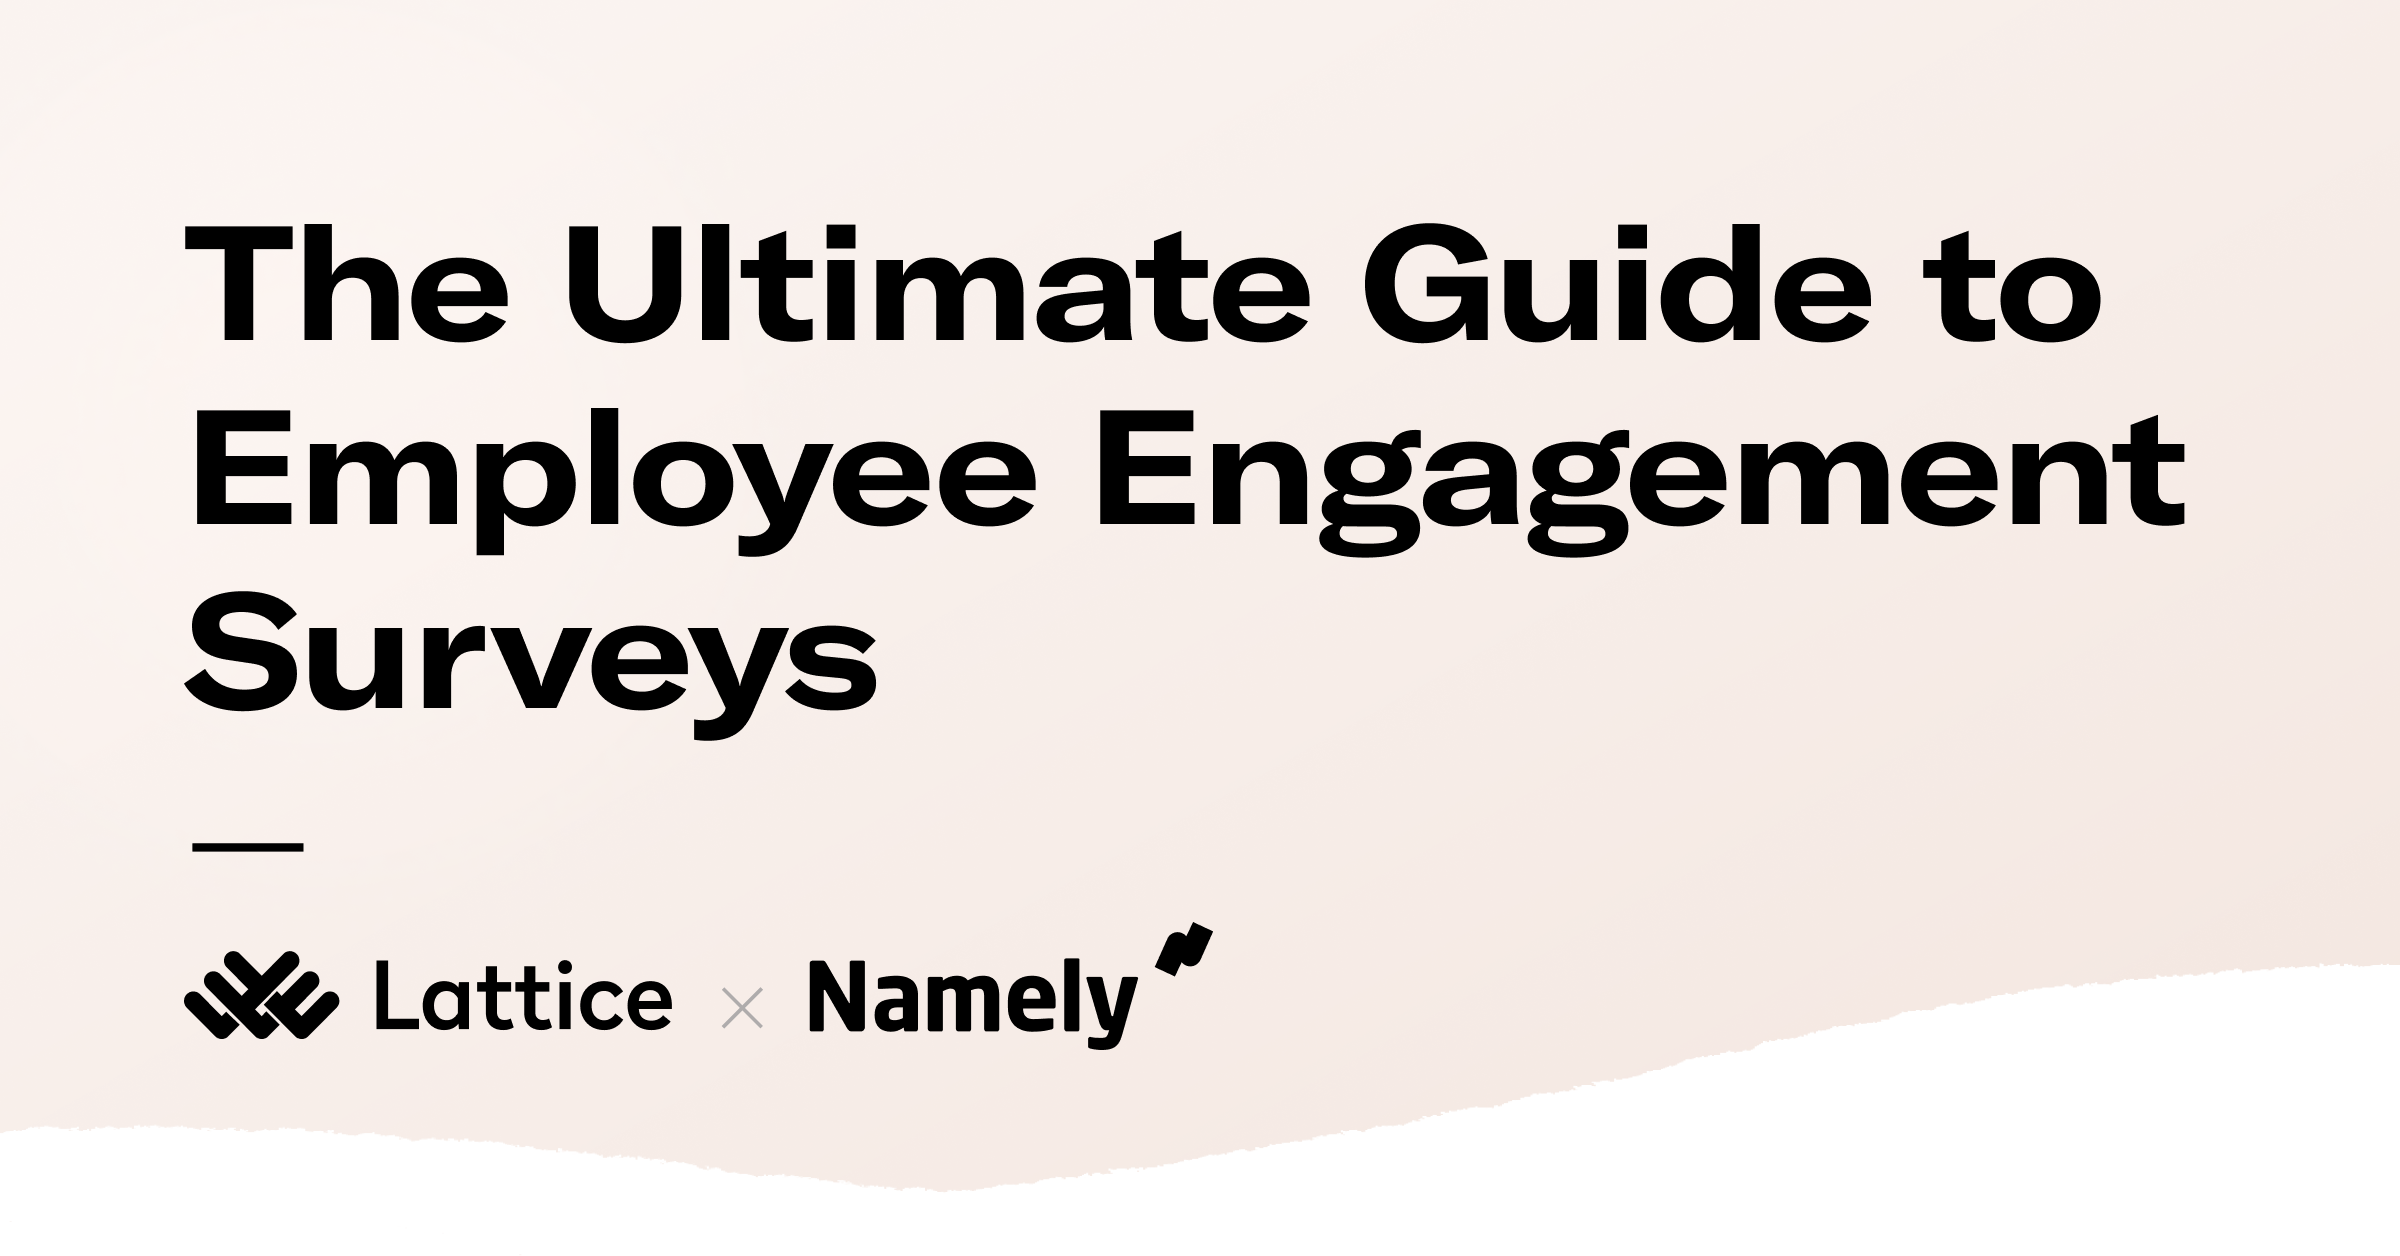 The Ultimate Guide to Employee Engagement Surveys